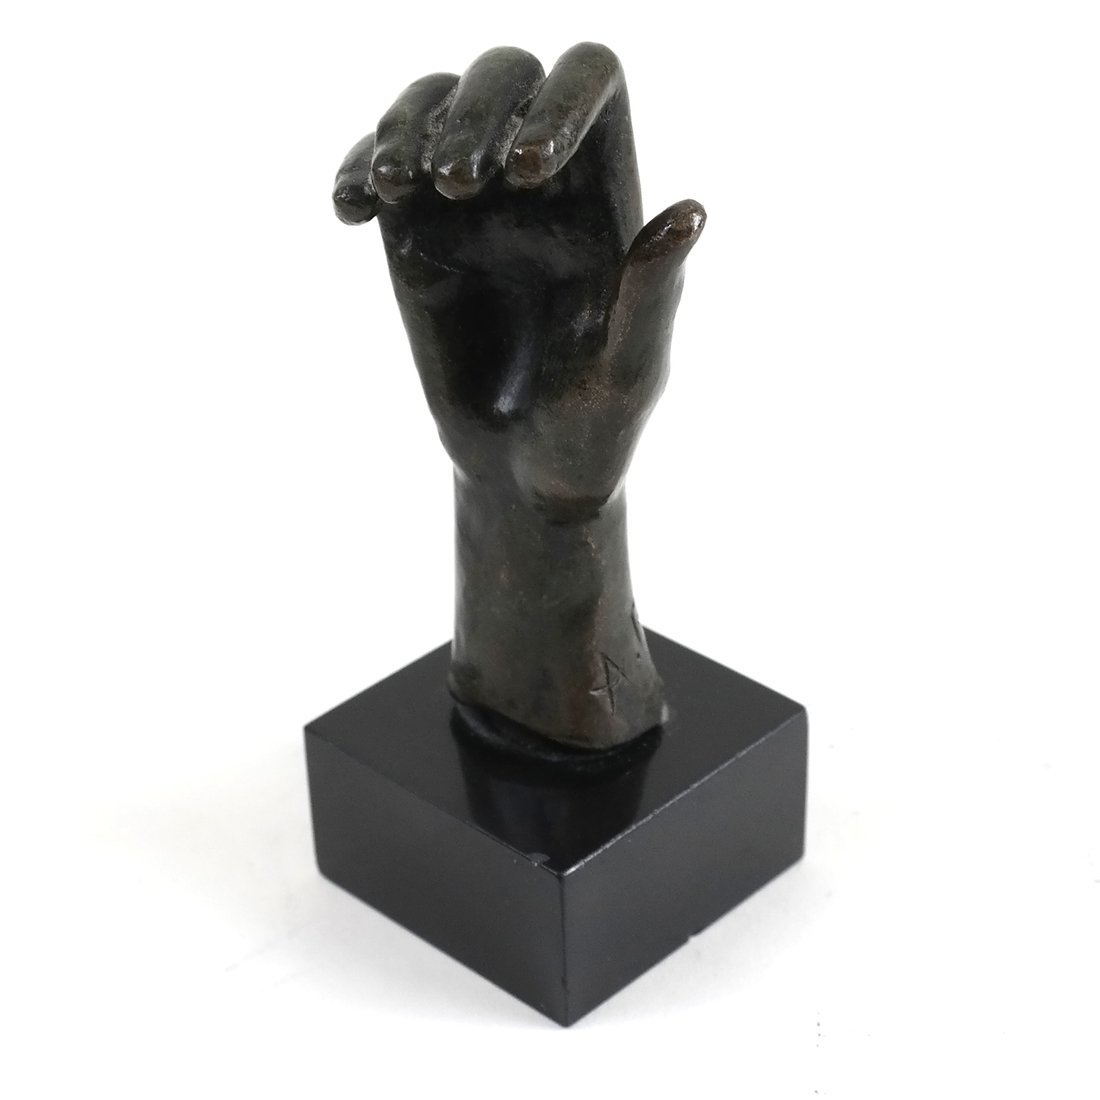 After Rodin, Patinated Bronze Hand Study